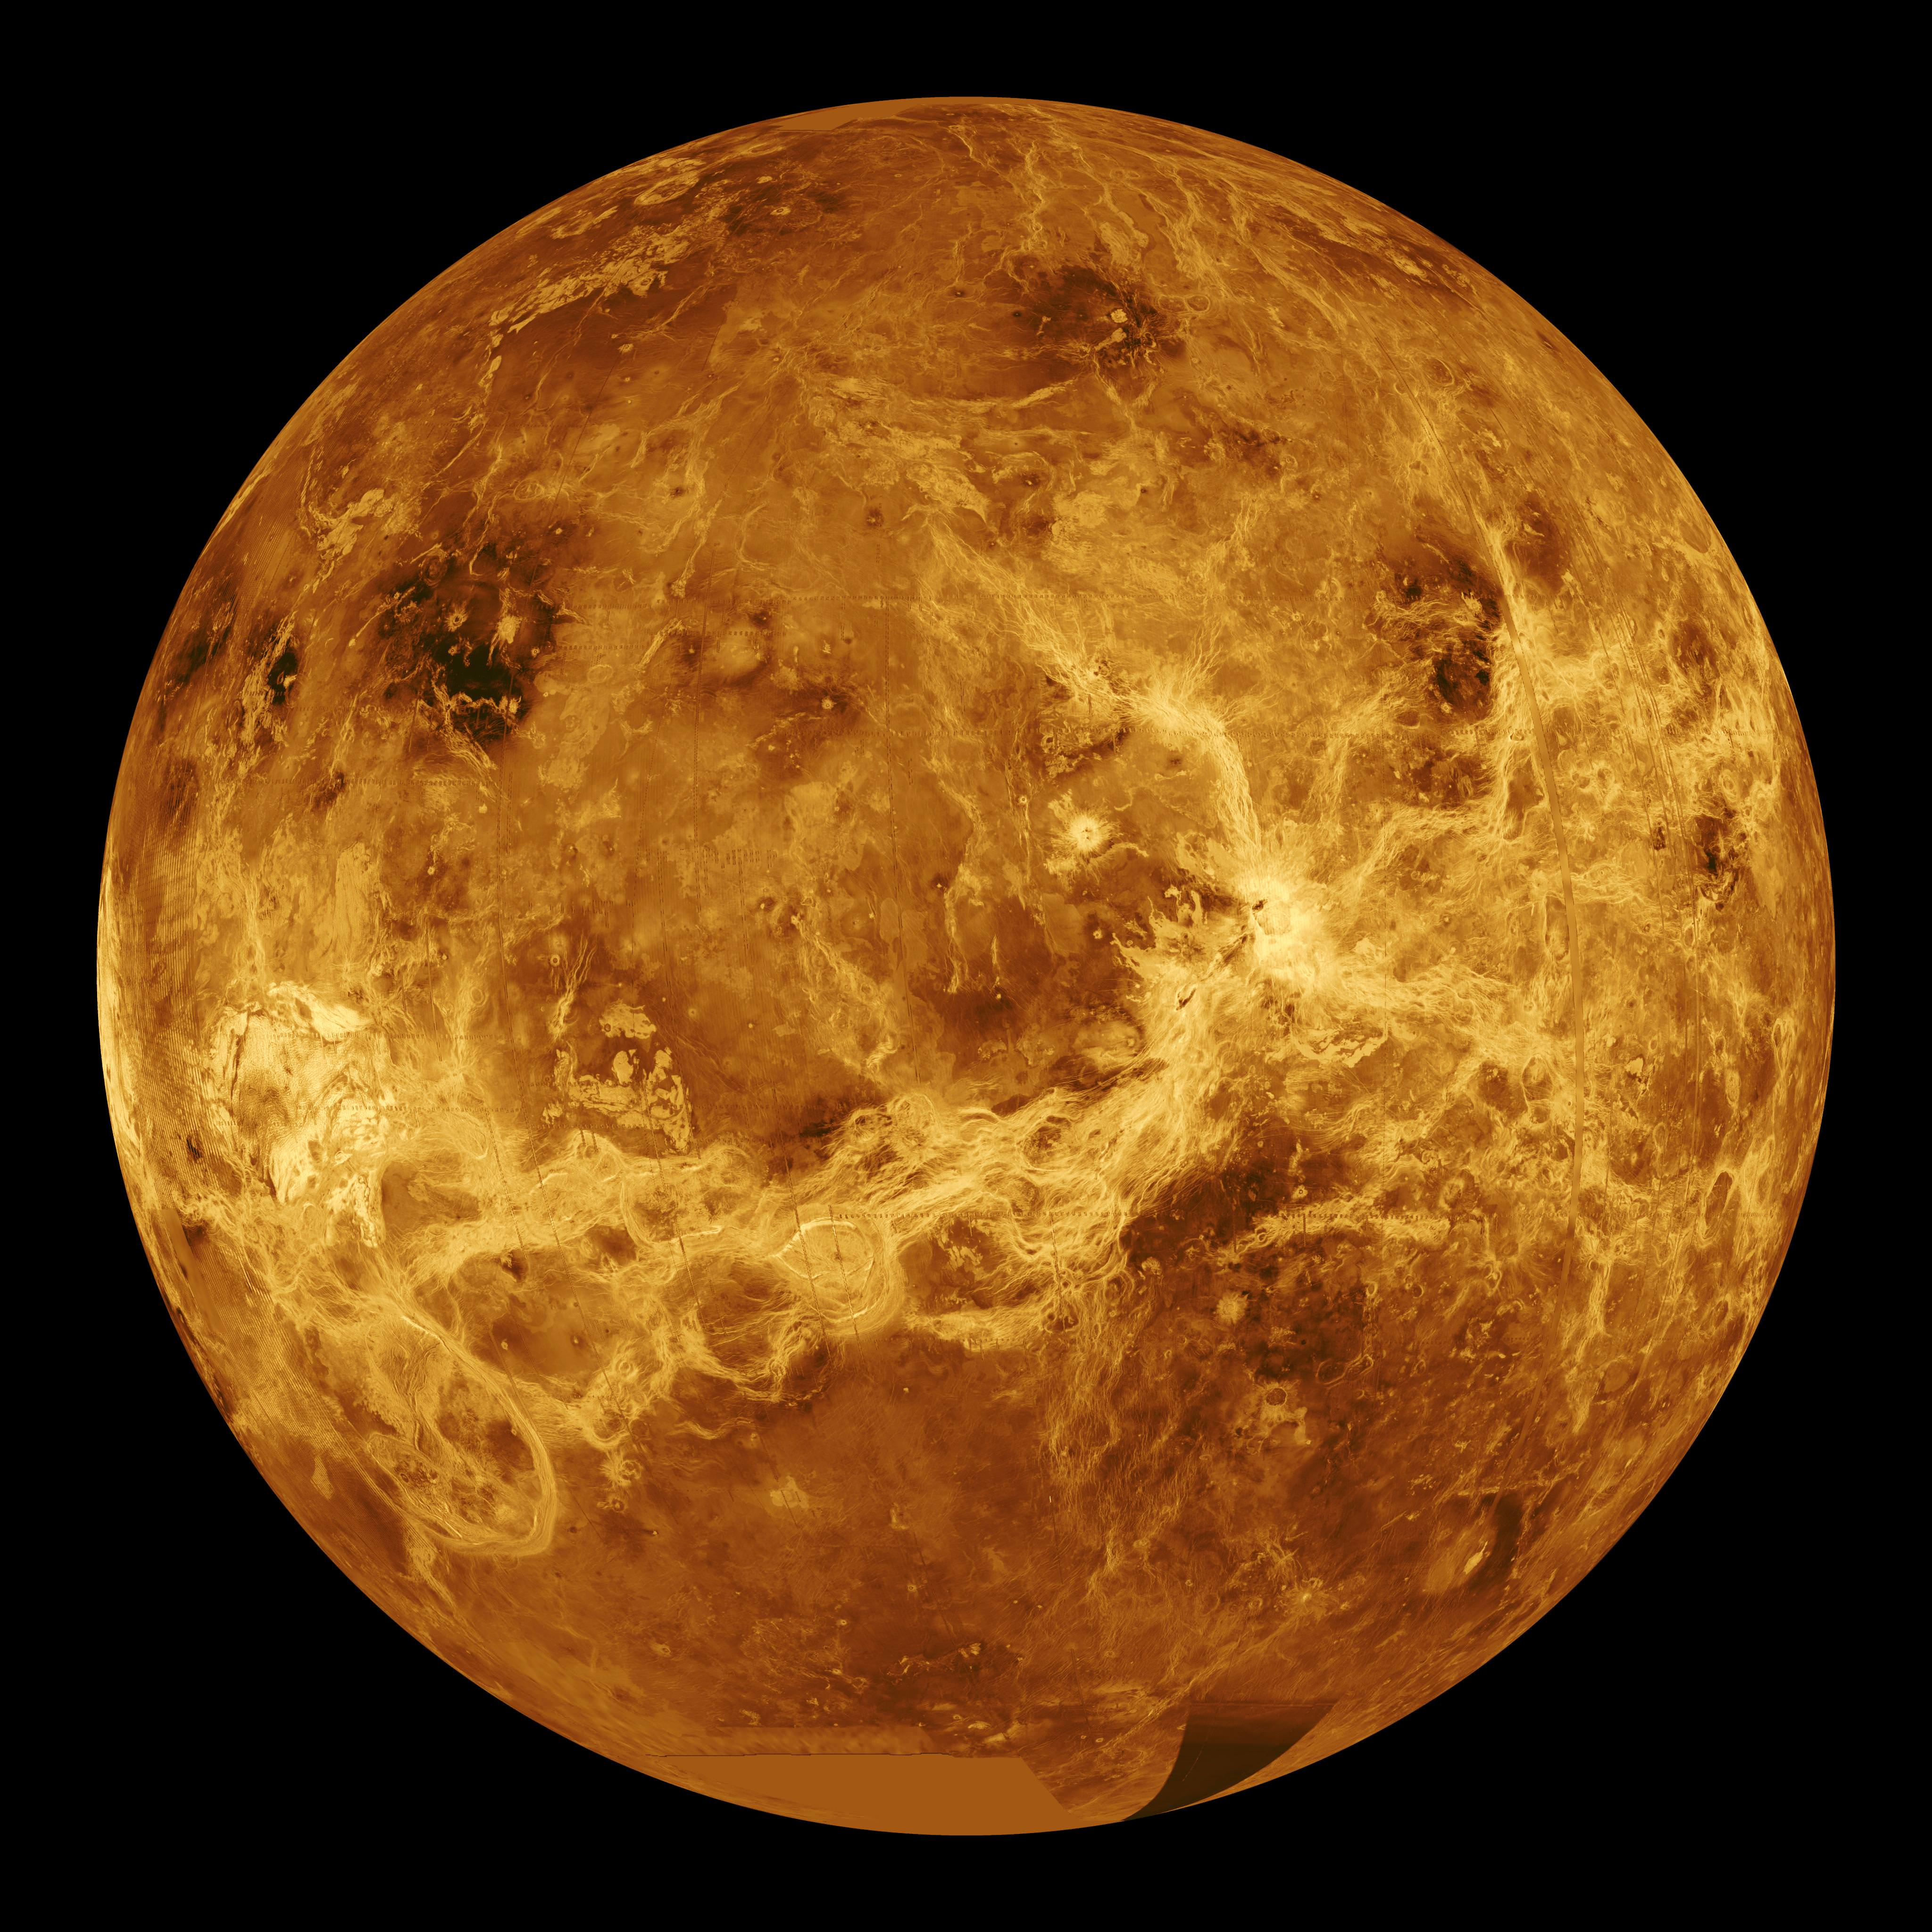 Venus Facts - Interesting Facts about the Planet Venus